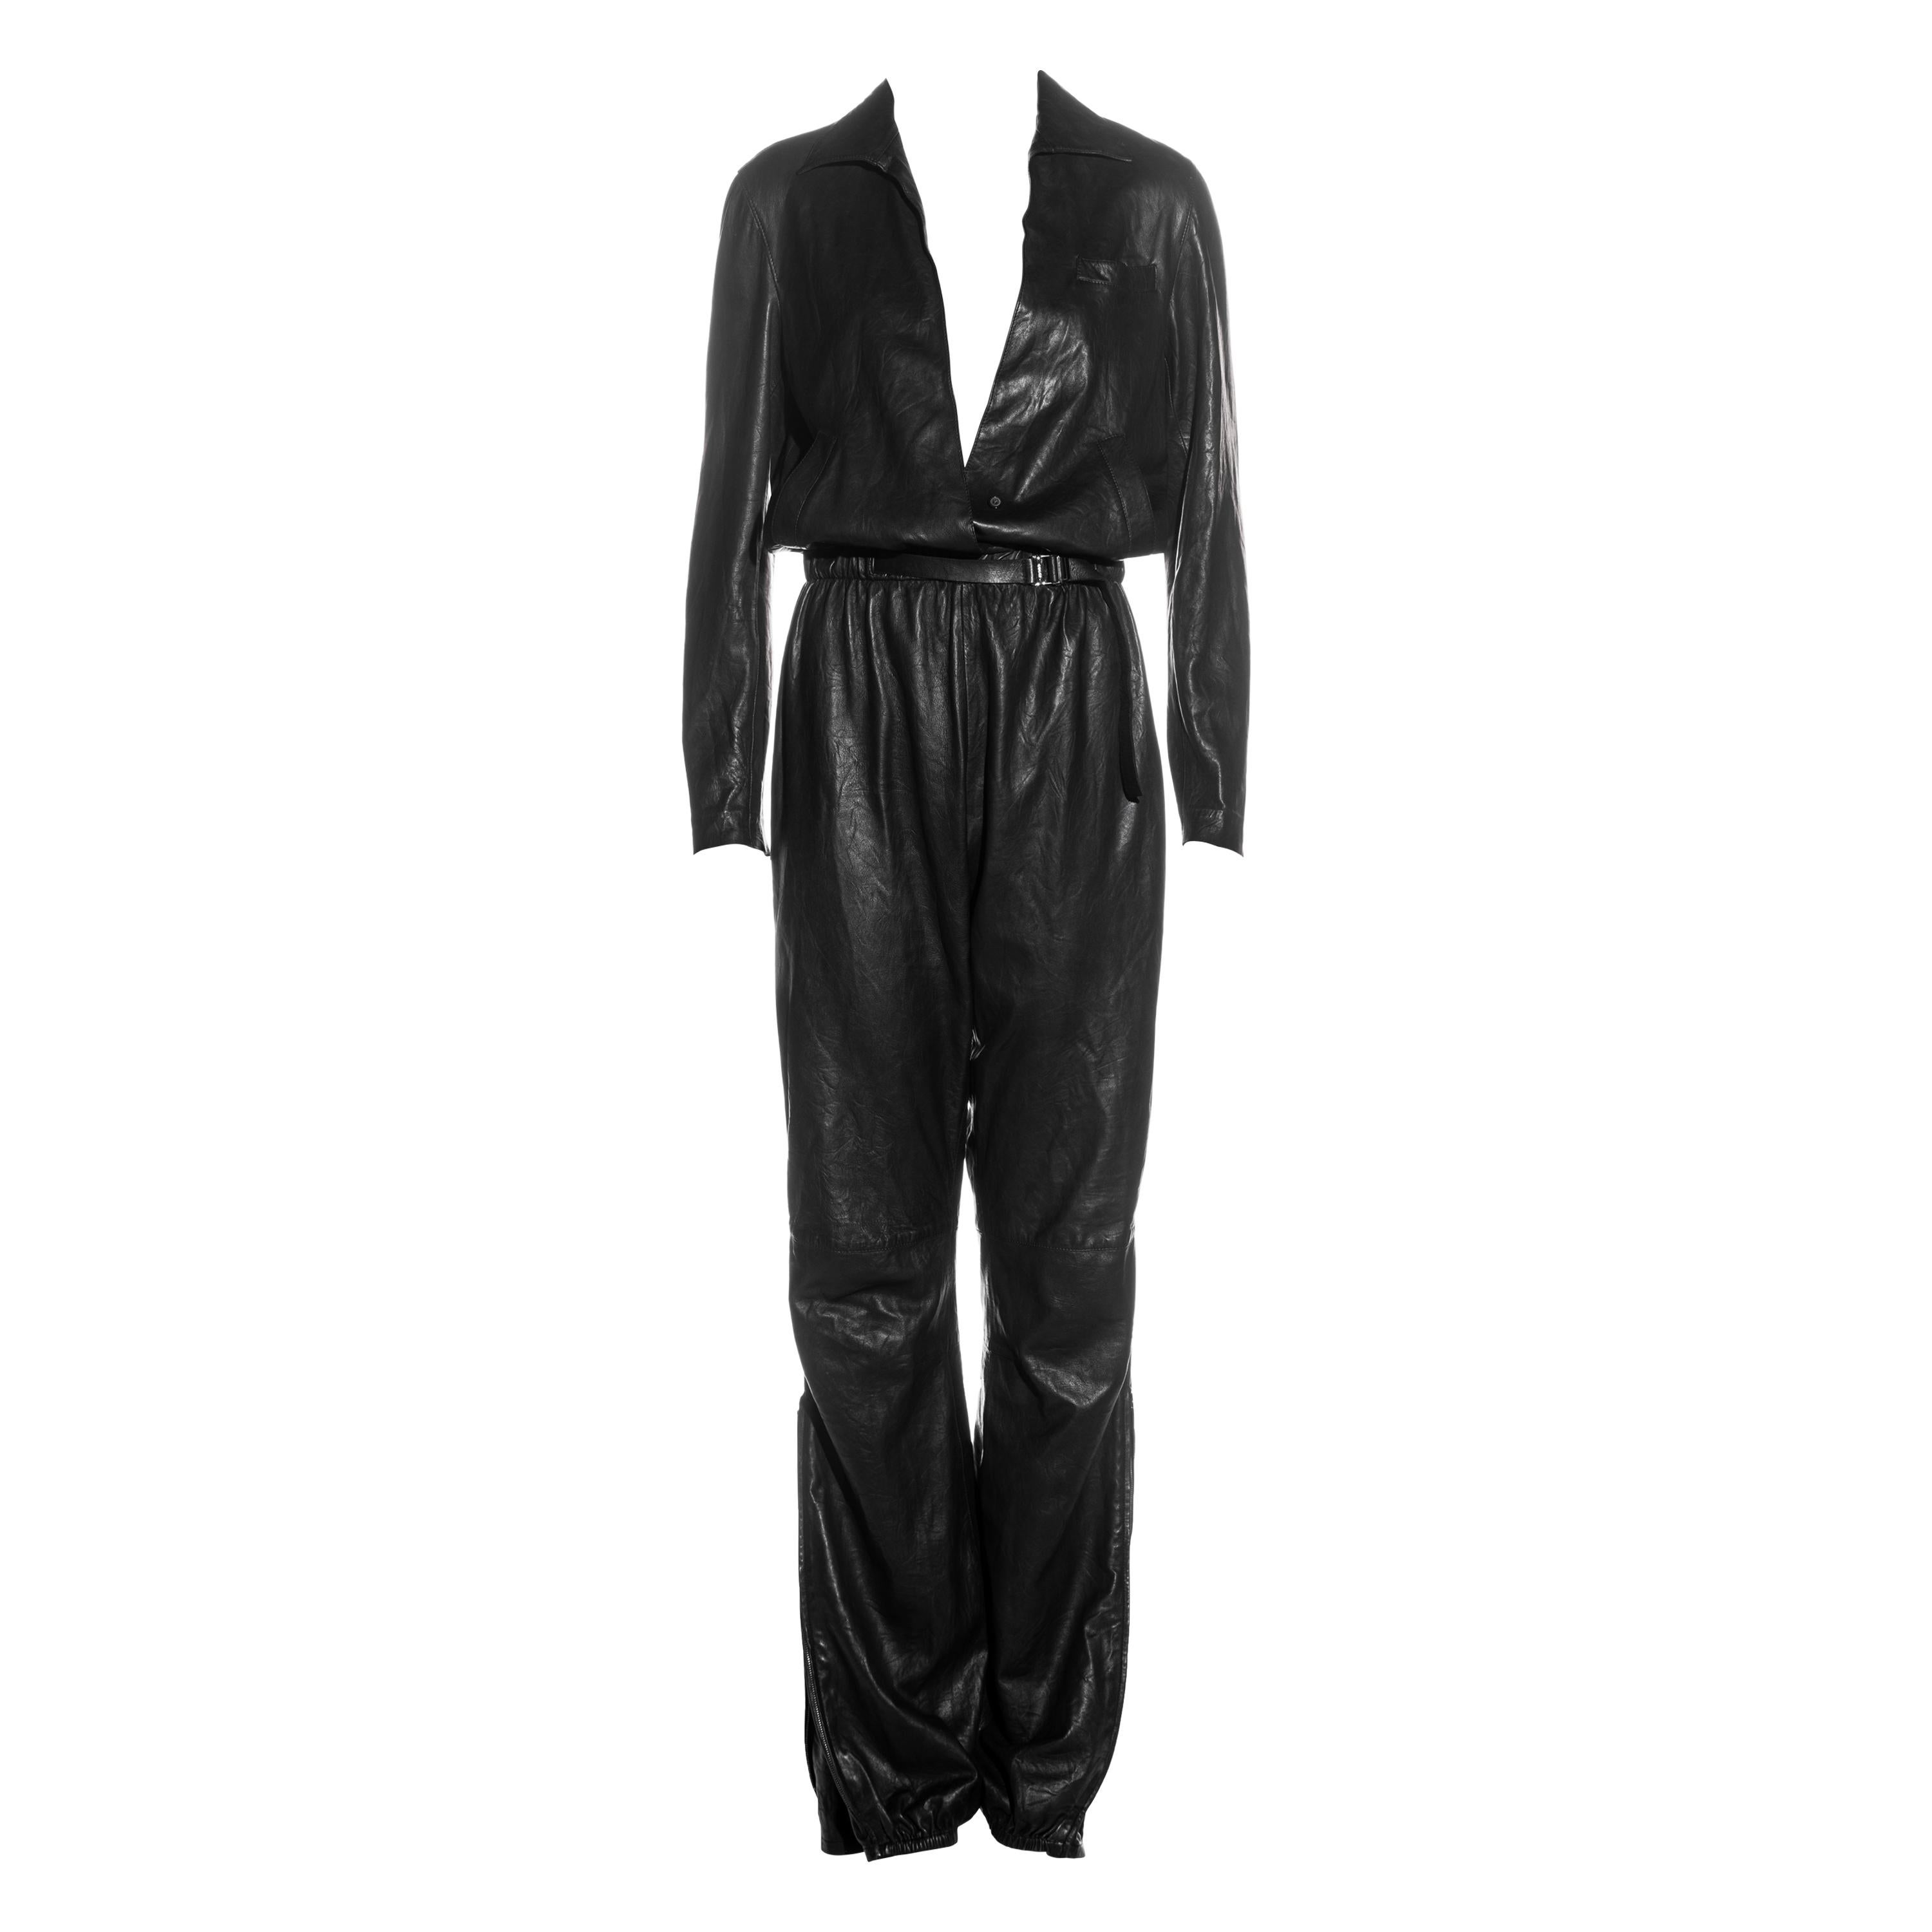 Gucci by Tom Ford black leather jumpsuit, ss 2000